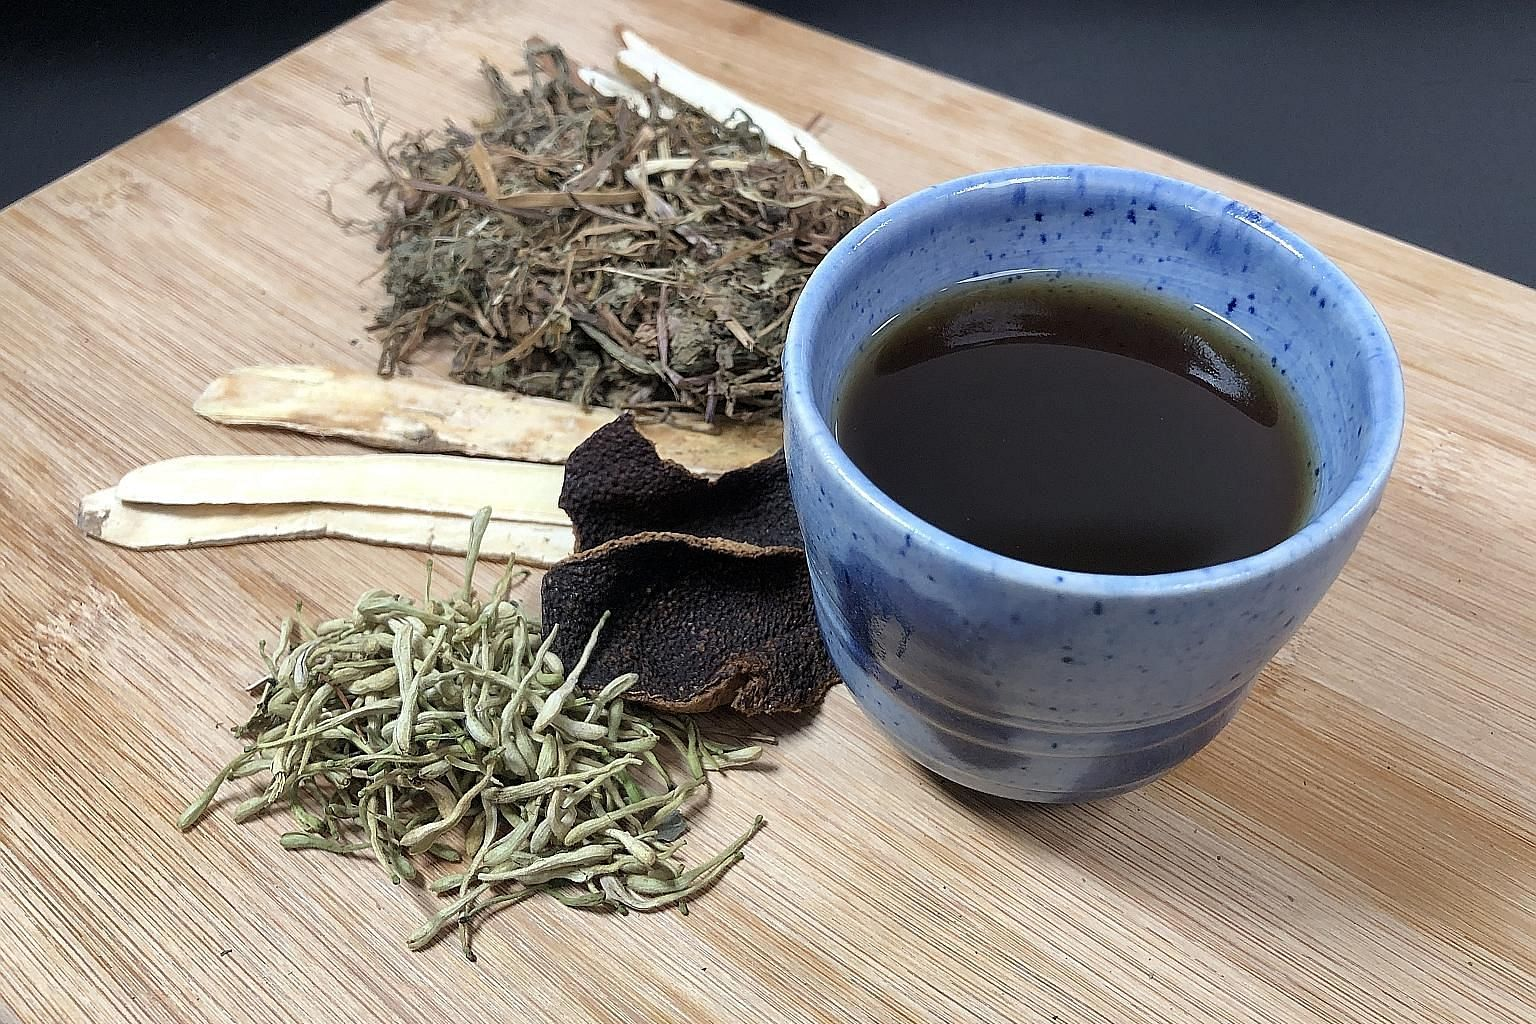 TCM practitioners recommend taking Detox And Immunity-boosting Tea or Five Flower Tea (above) twice a week, after meals.